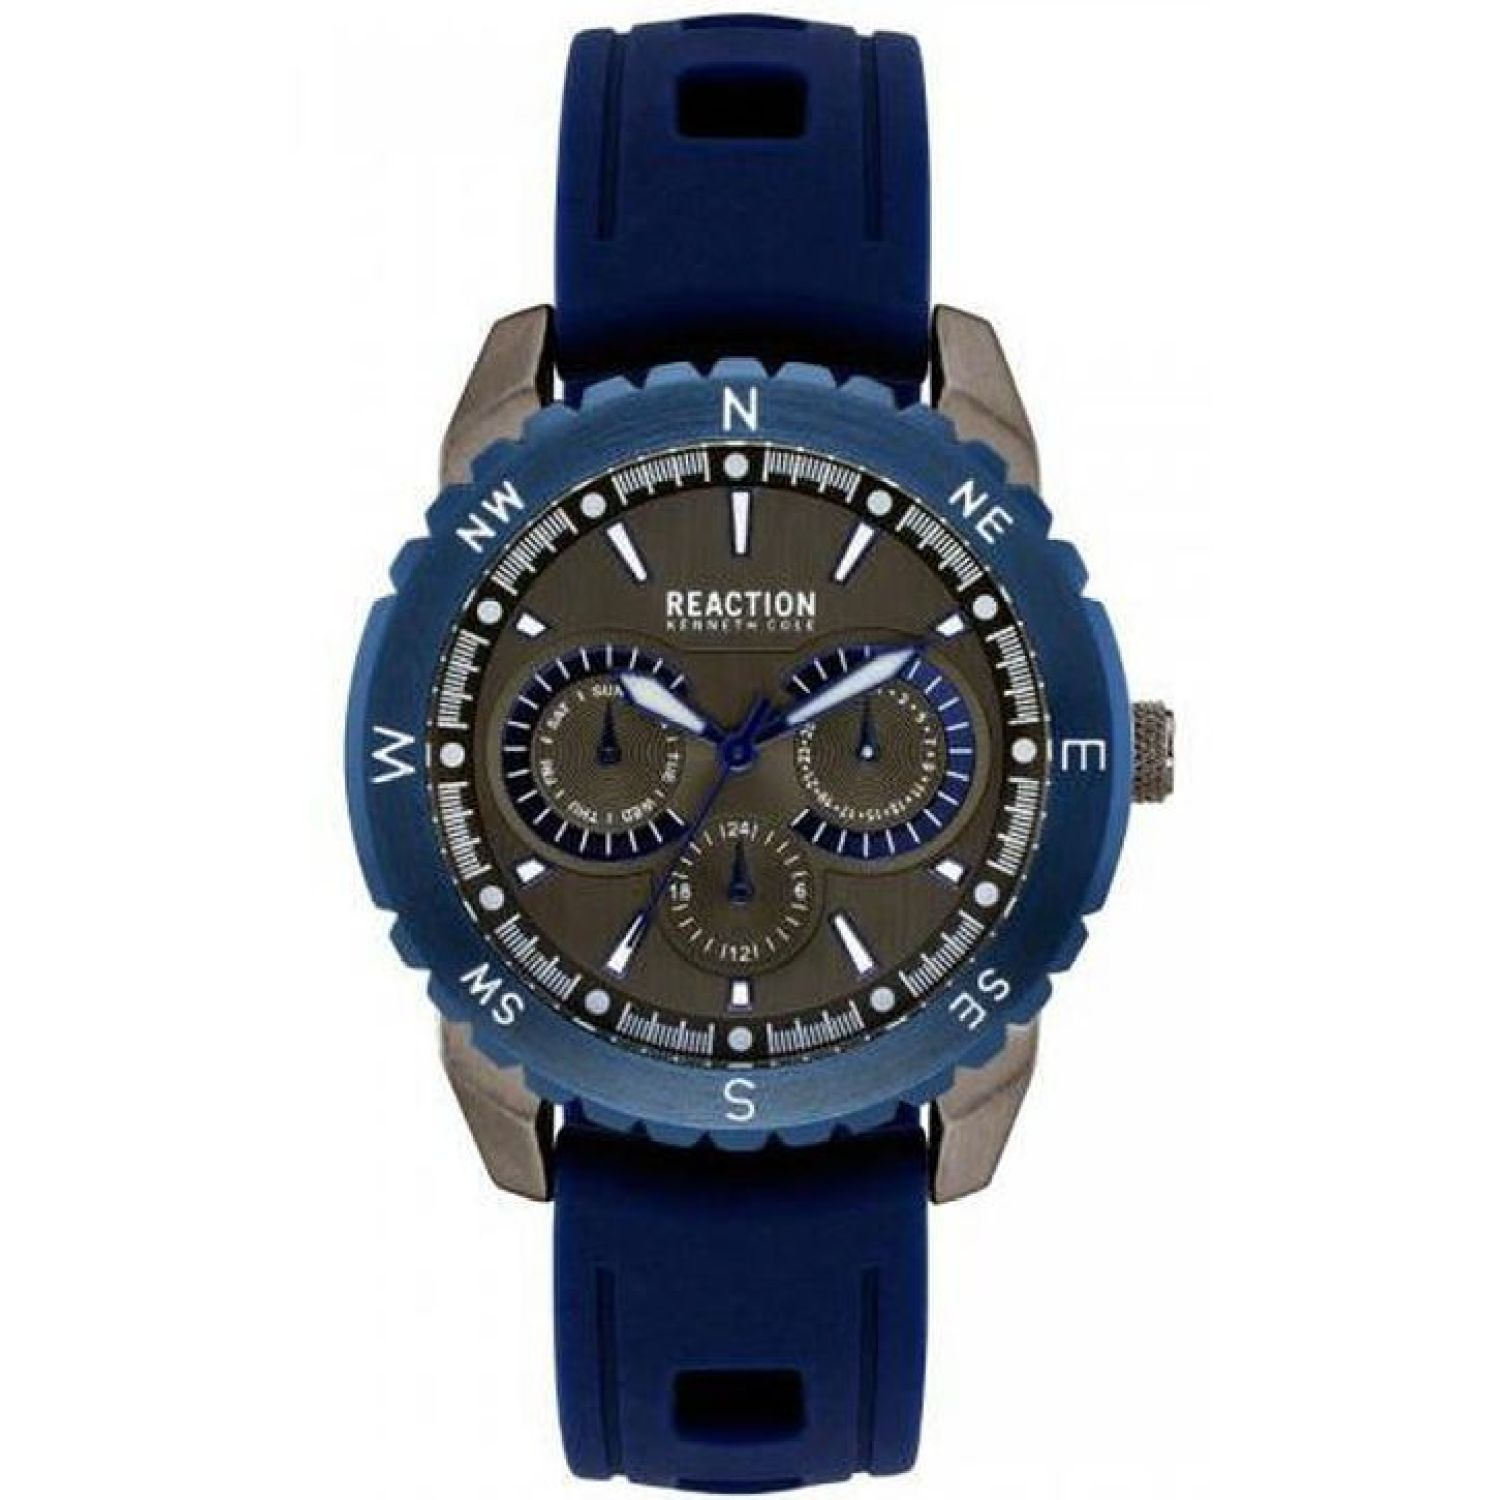 KENNETH COLE Reloj Kenneth Cole Rk50969009 Azul Relojes de Pulsera